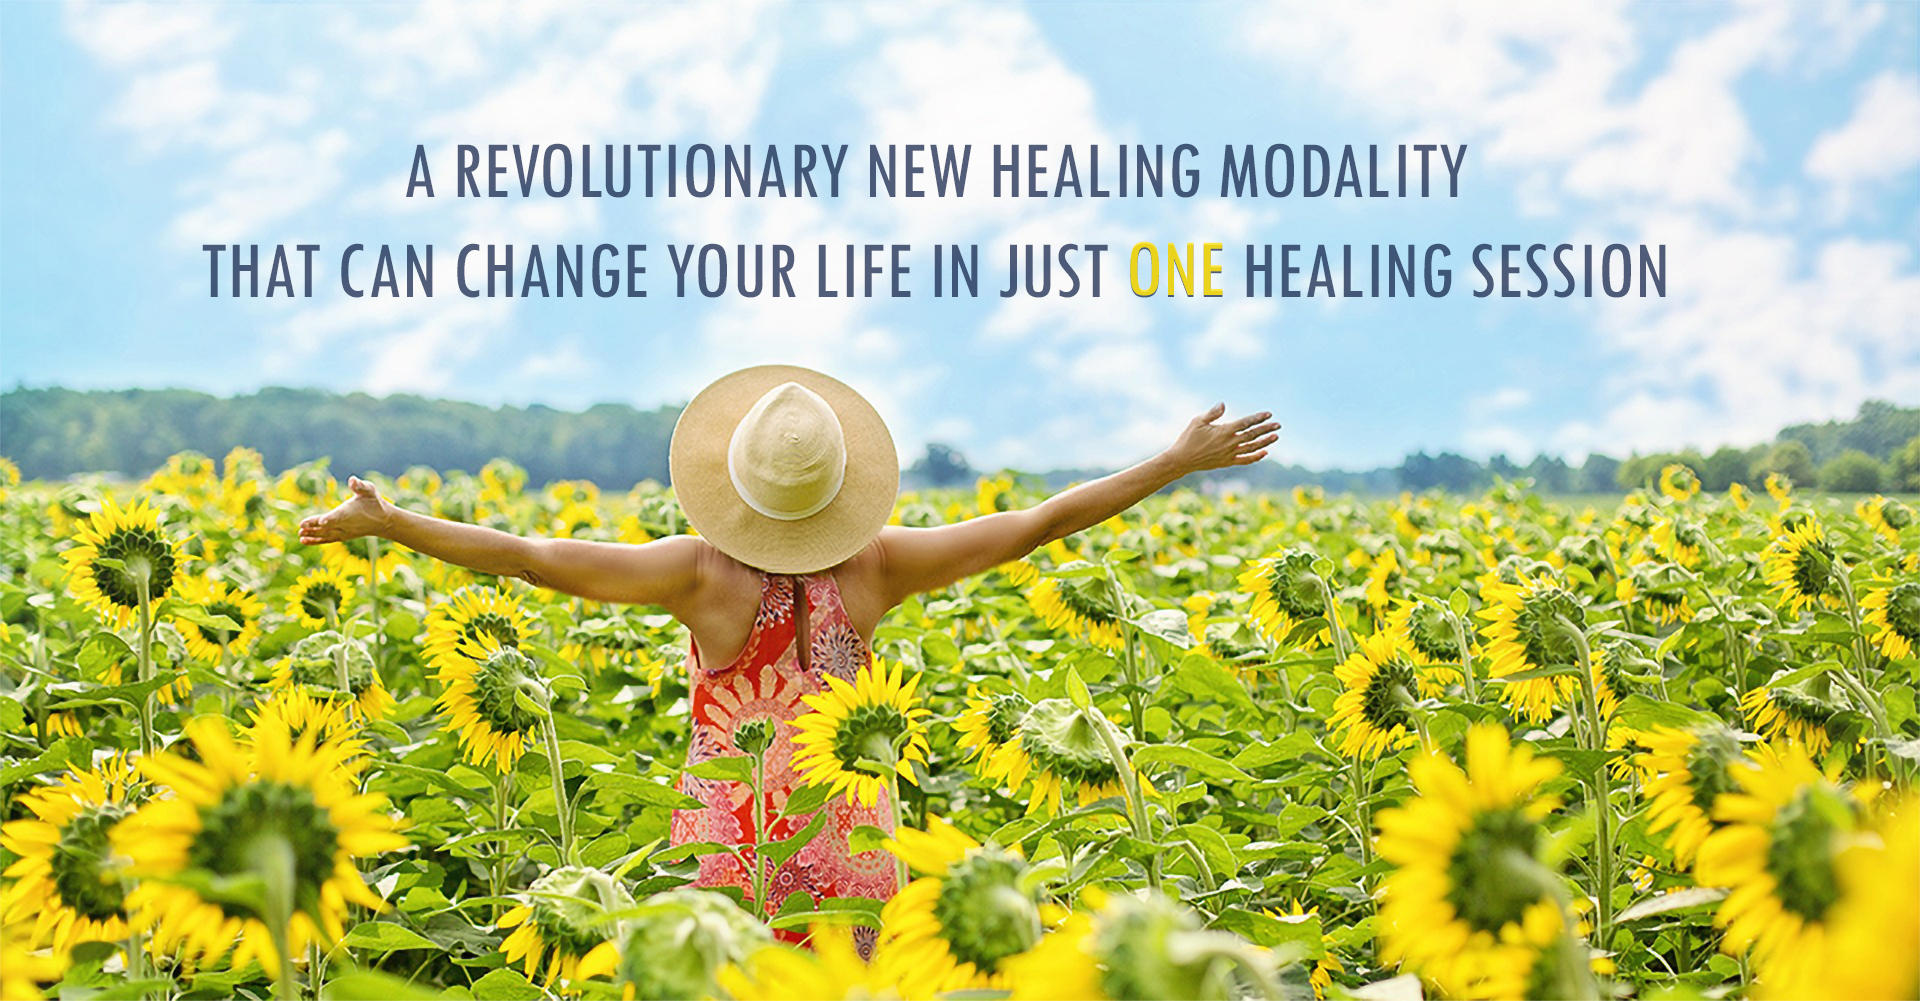 MAP is a revolutionary new healing modality that can safely transform your life in just one session.